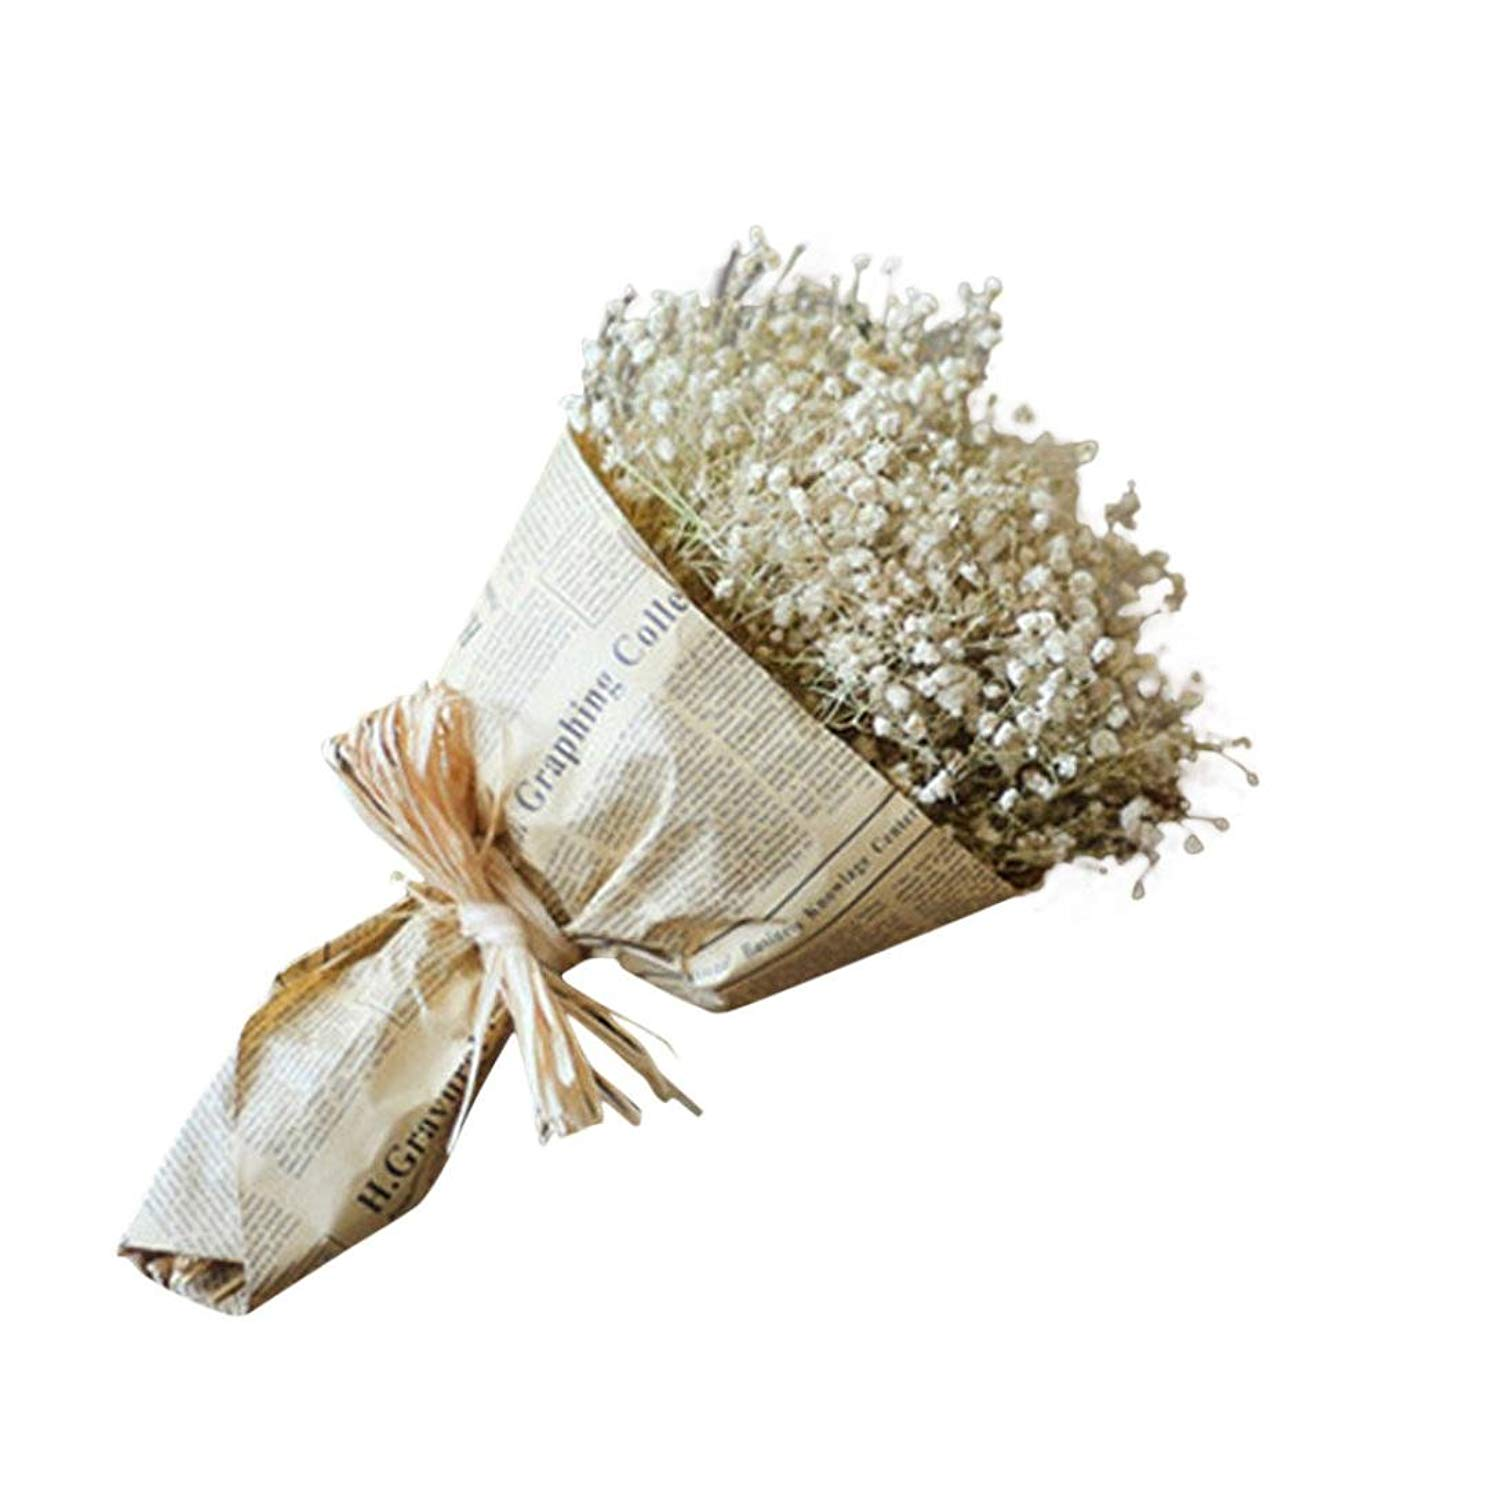 Mchoice Natural Dried Flower Baby's Breath Home Decor Natural Dried Flower Full Stars Gypsophila